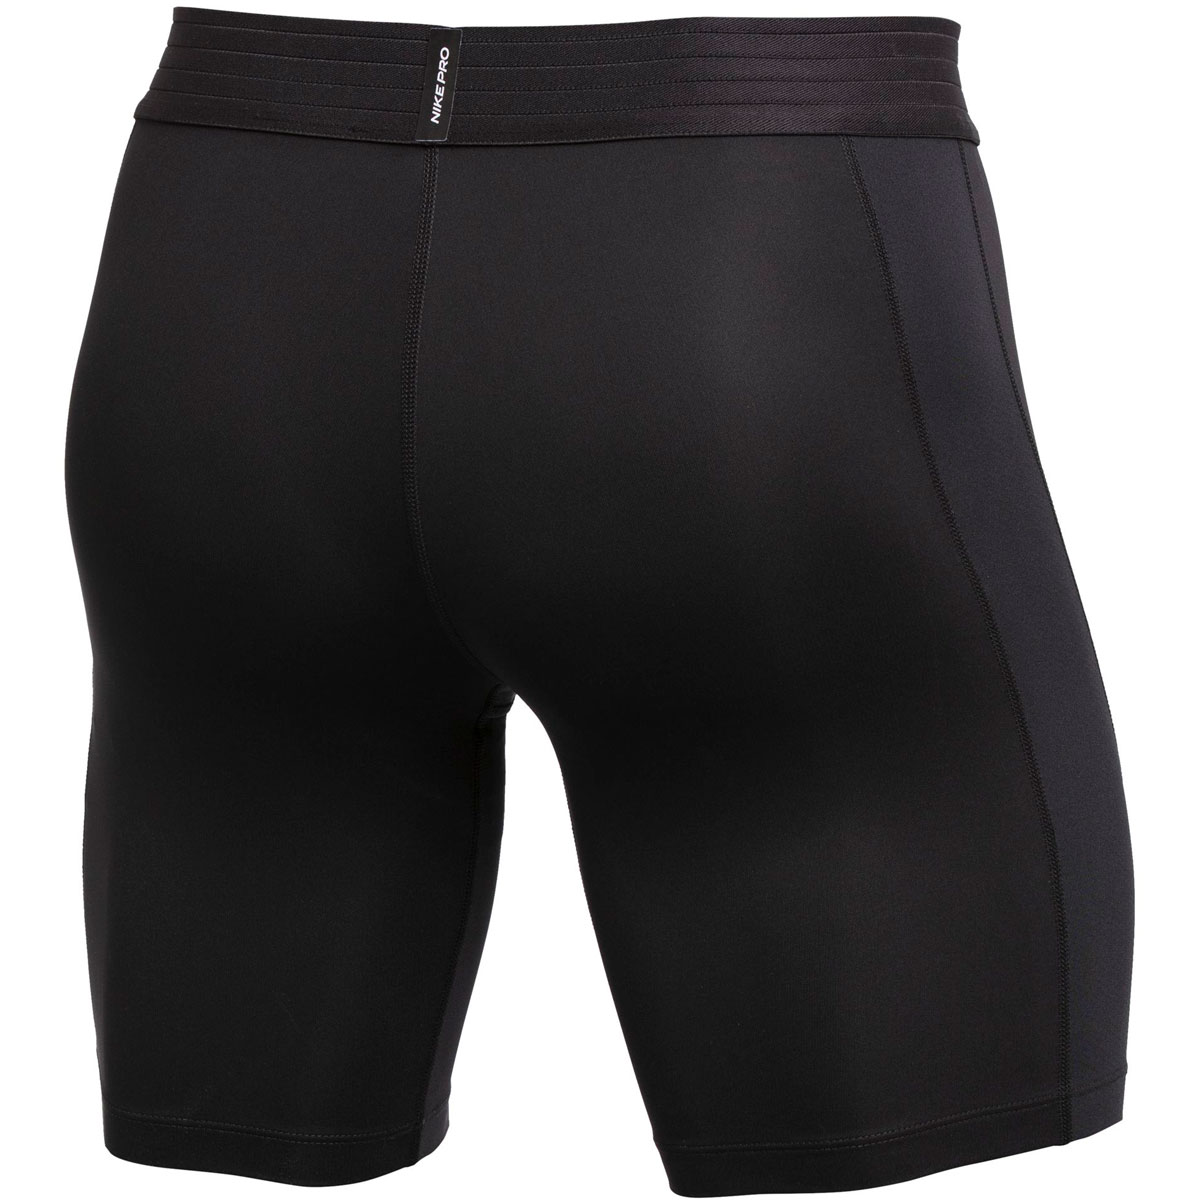 Men's Nike Pro Shorts - Color: Black/Cool Grey - Size: LT, Black/Cool Grey, large, image 2